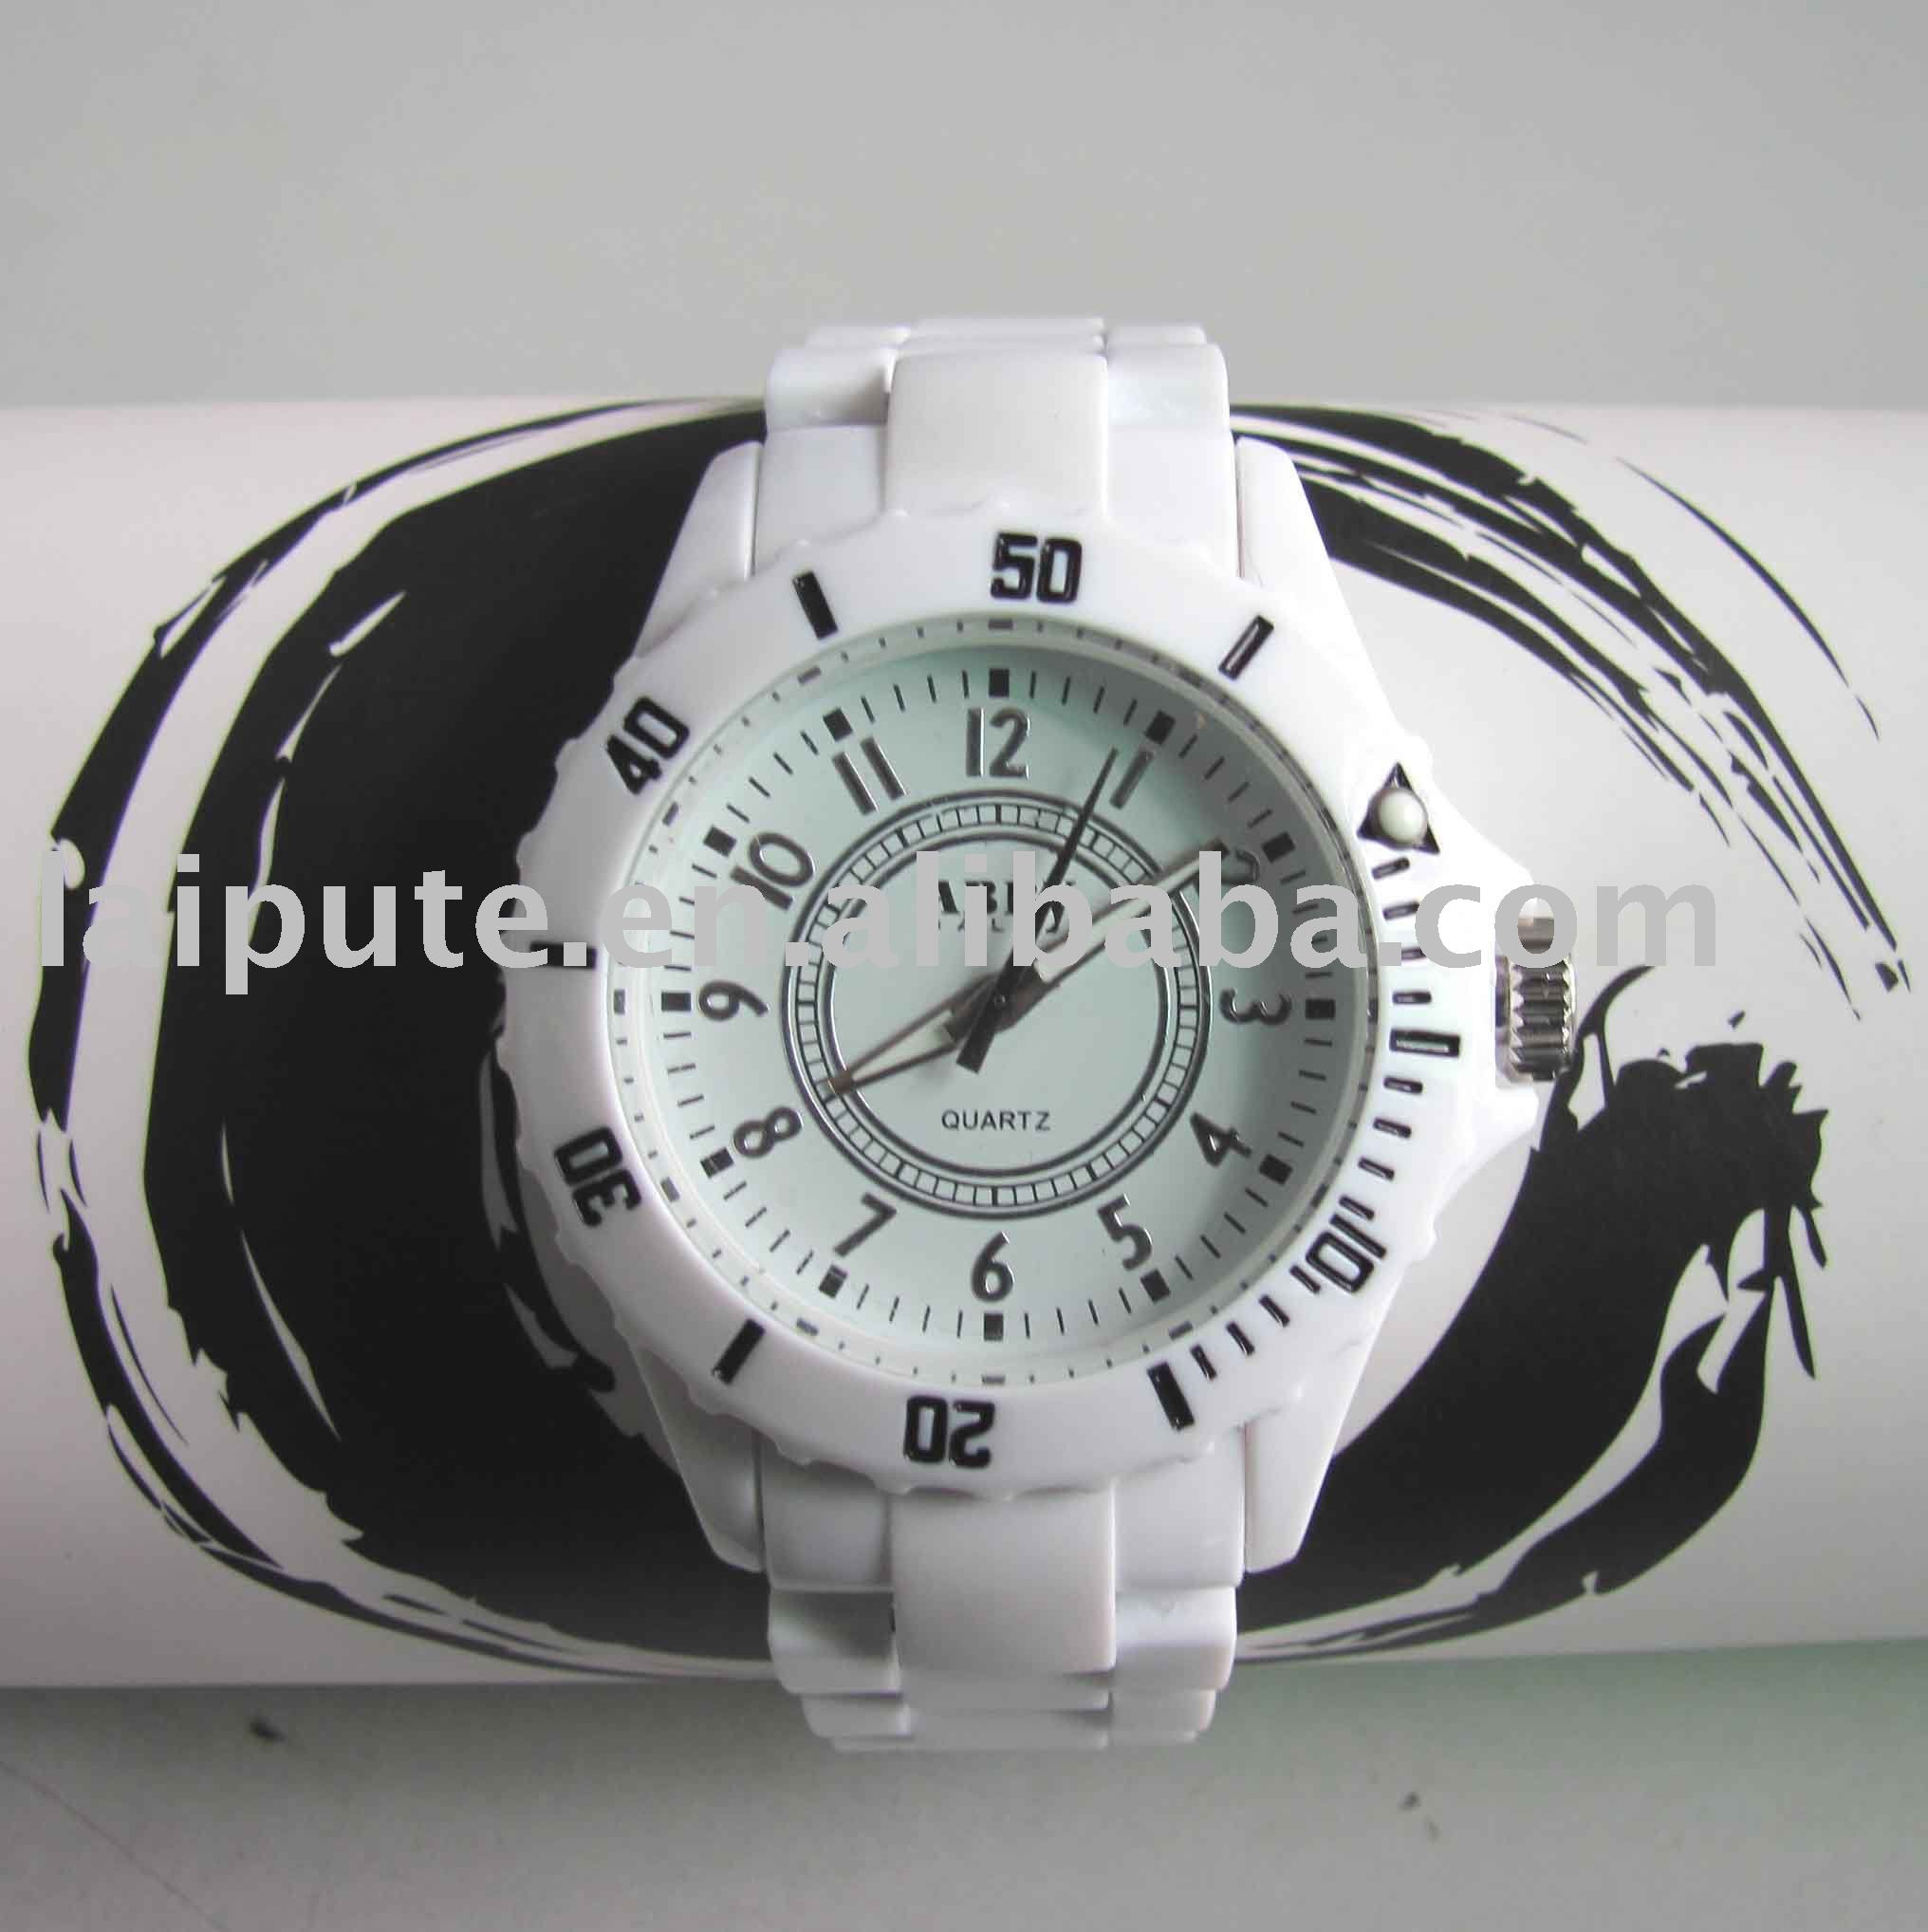 watch price borelli strap black xcite chronograph review more kuwait watches silicone categories rubber result gents in